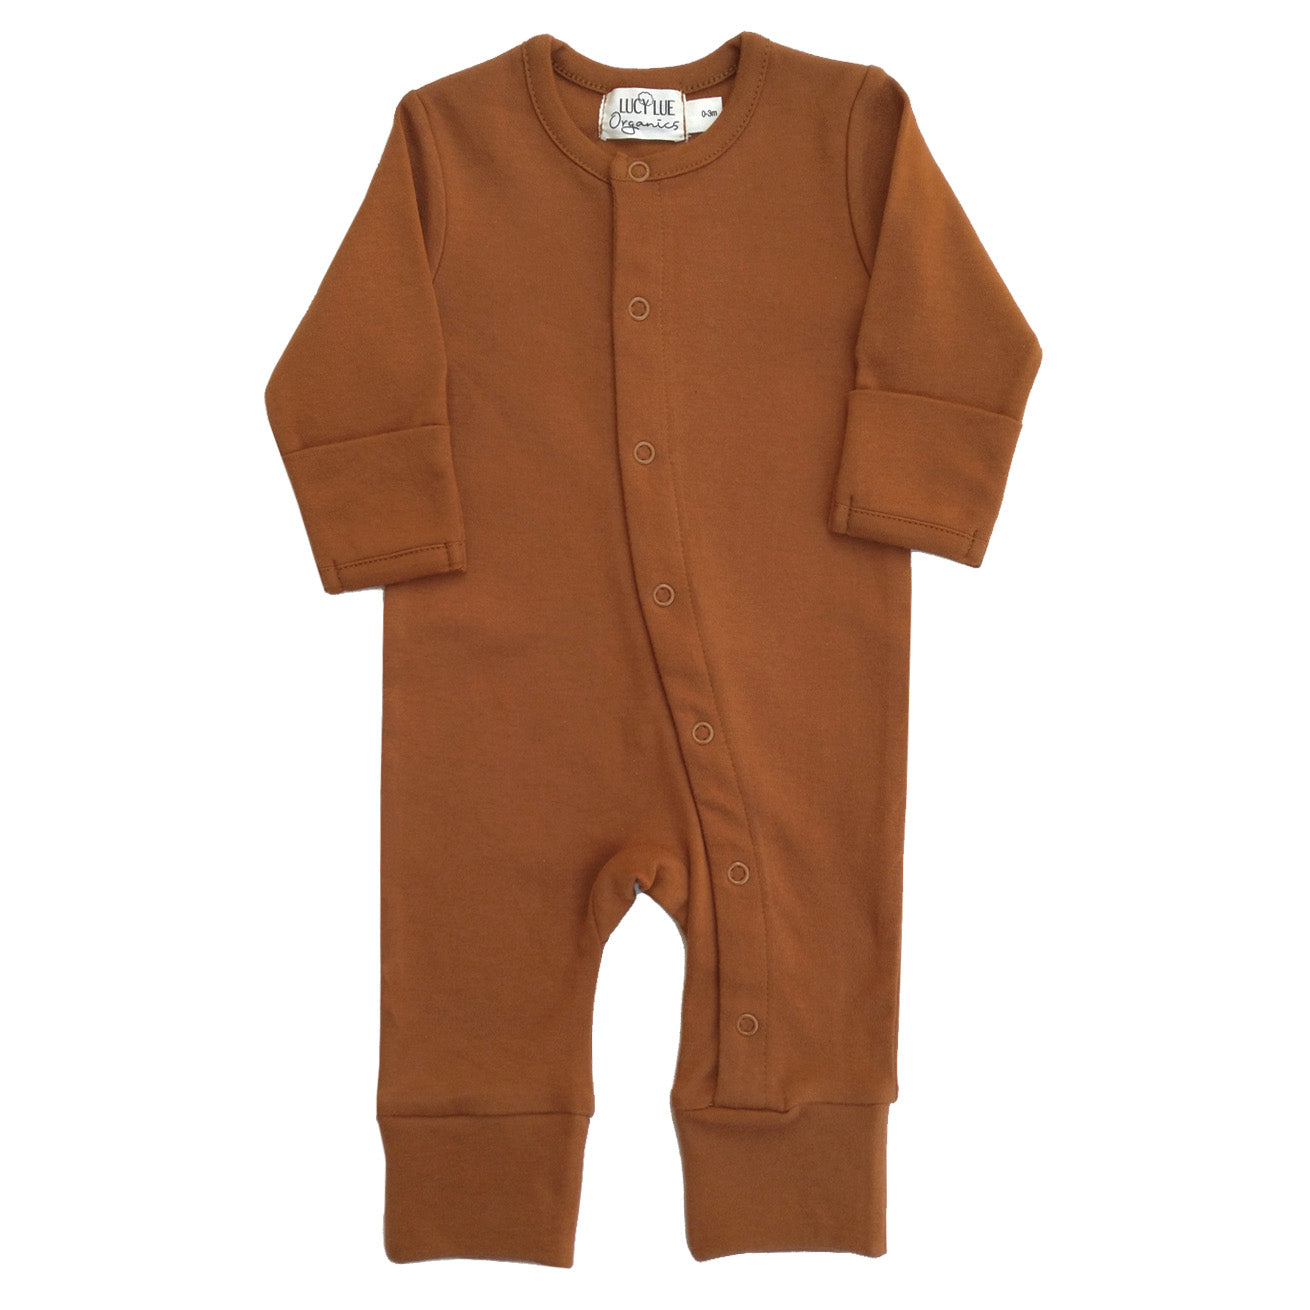 Organic Snap footie by Lucy Lue Organics. long sleeve baby romper. Organic baby clothes. Modern organic baby clothes. soft Baby rompers. organic baby bodysuit. baby snap romper. Footed sleepers. organic onesie, long sleeve romper, newborn baby clothes, L'oved baby romper jumpsuit. sustainable baby clothes, neutral solid color baby clothes